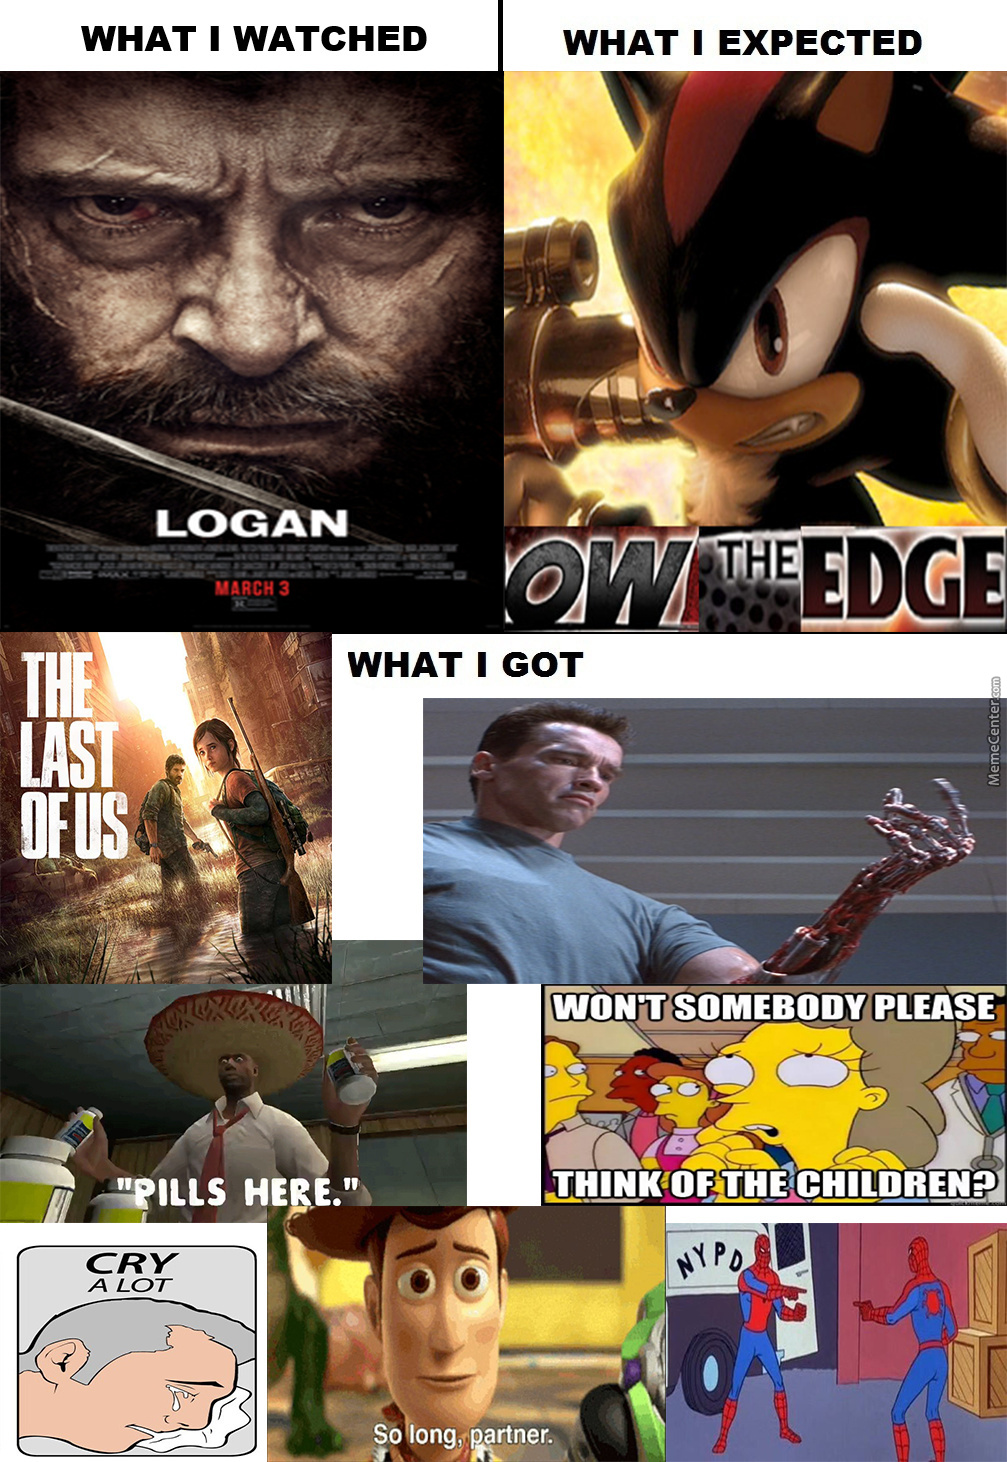 Logan Is Awesome And Depressing Af, Ngl